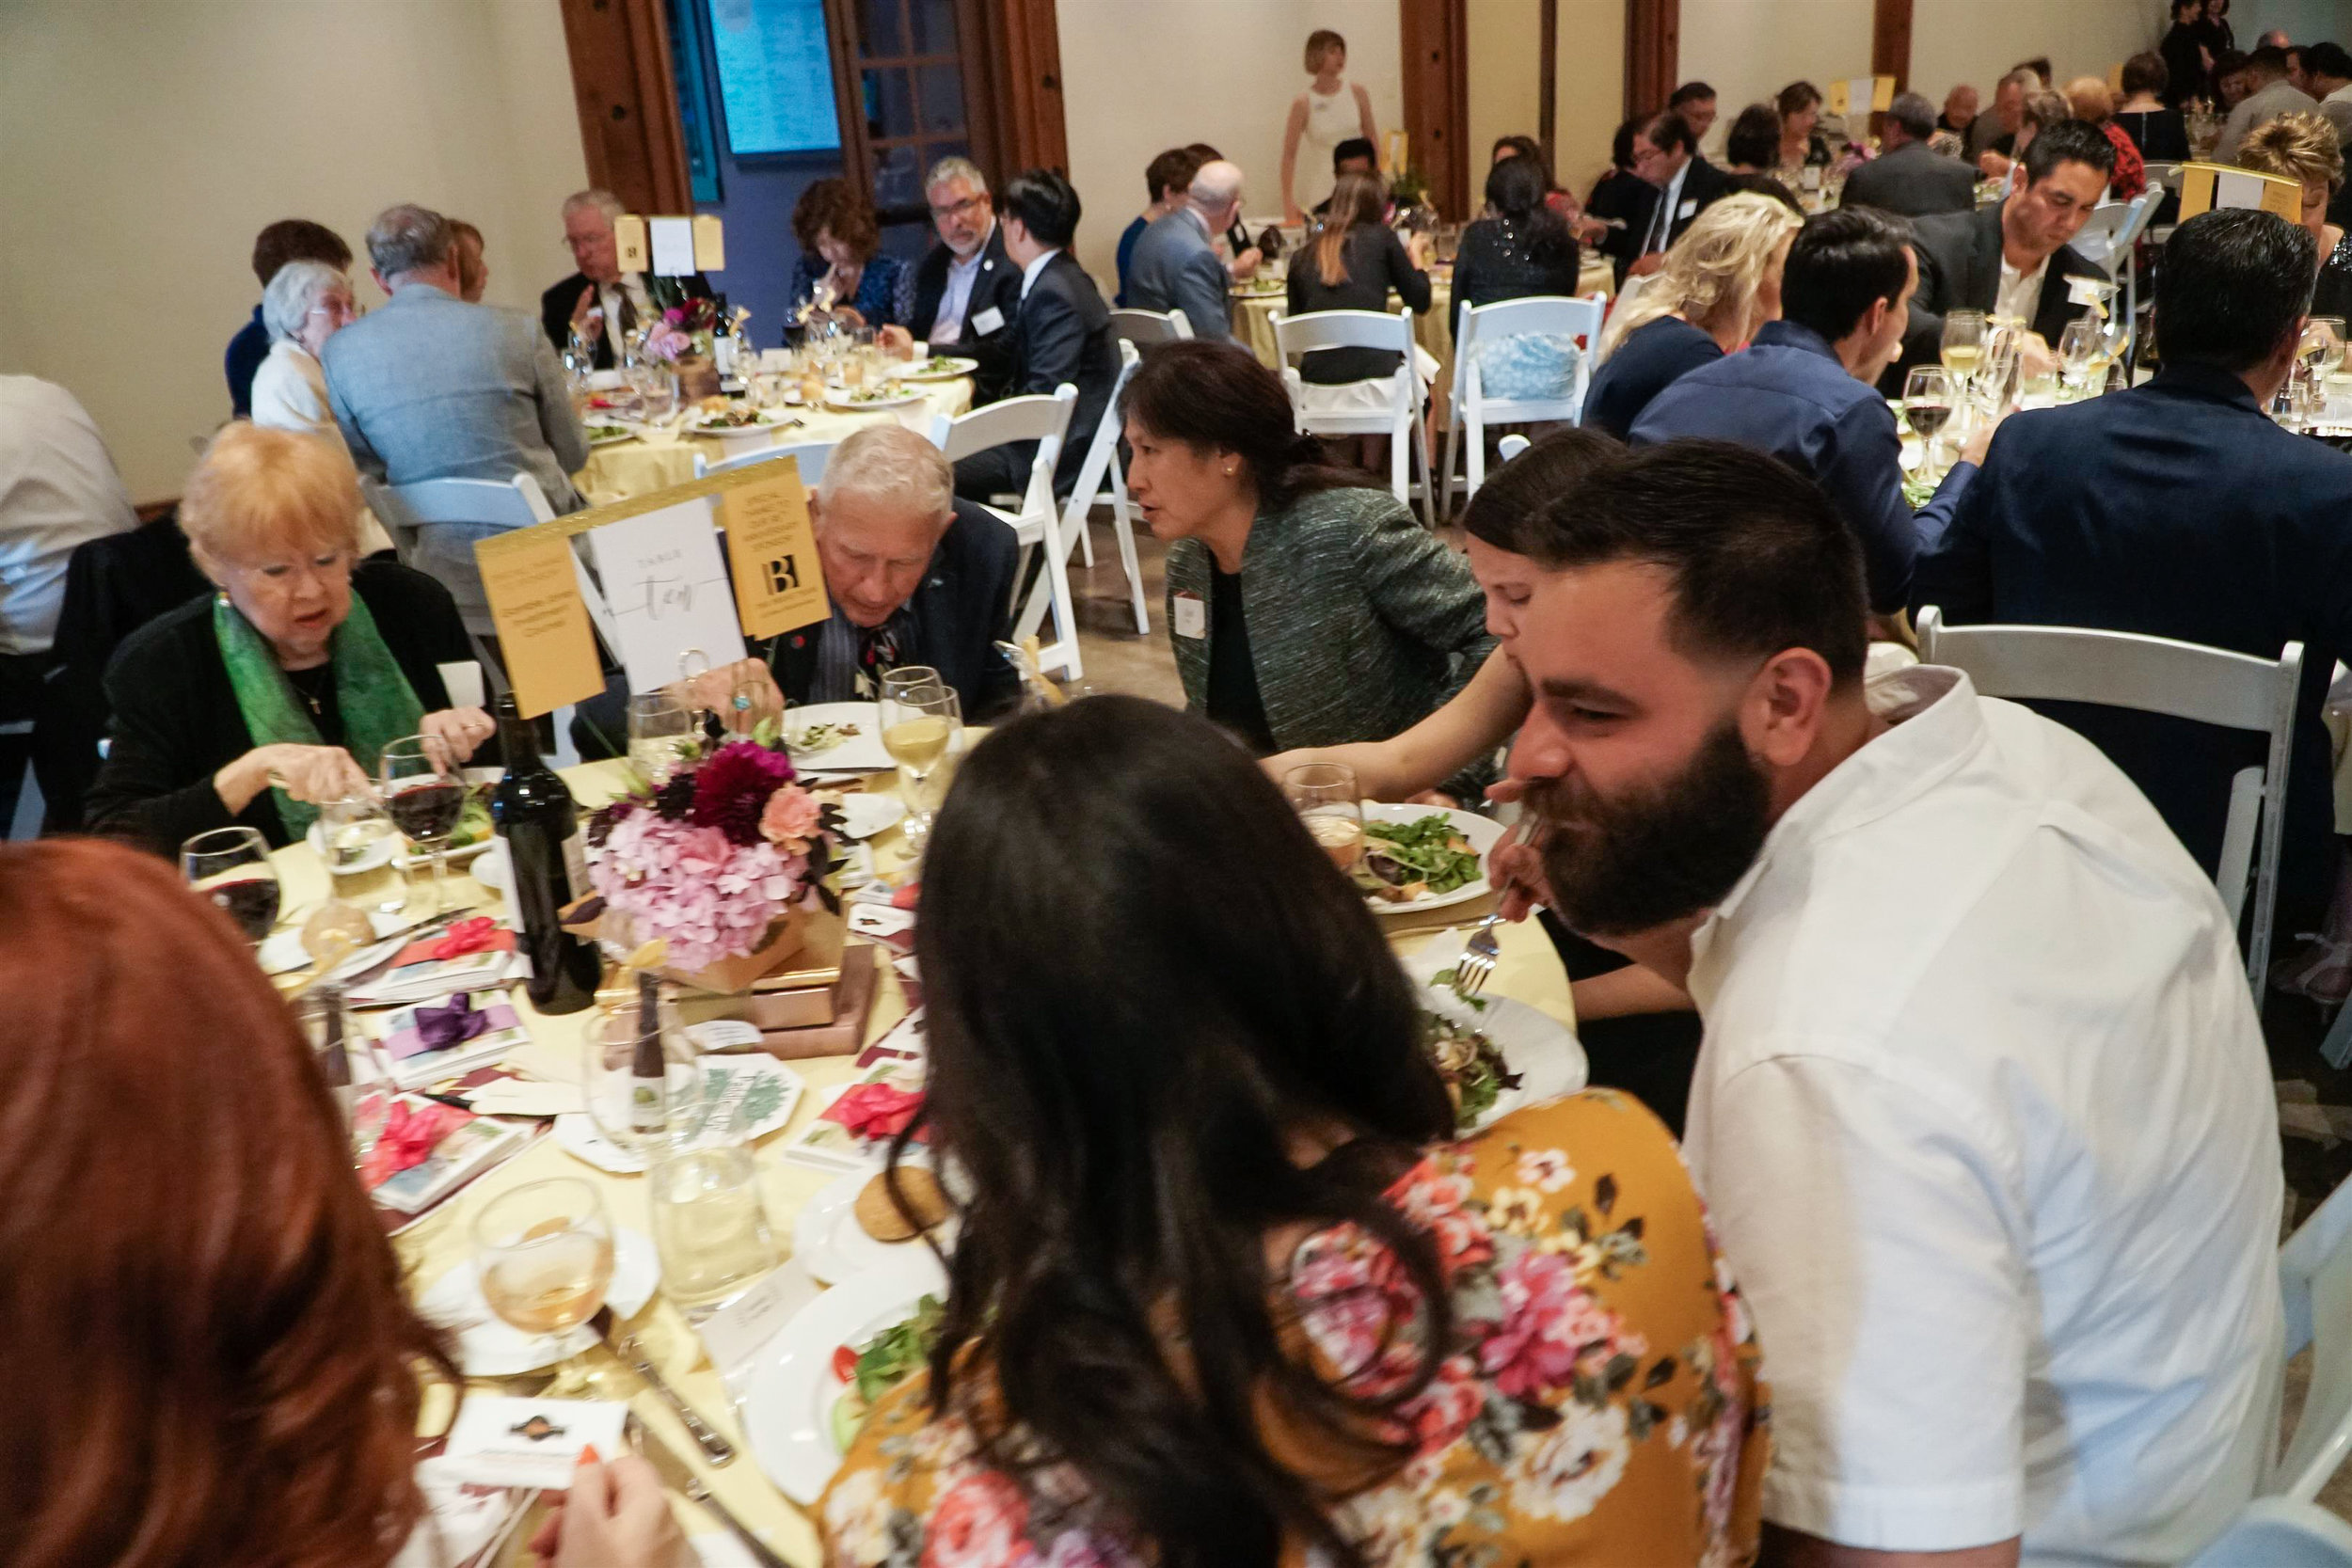 Guests chatting during Gala dinner.